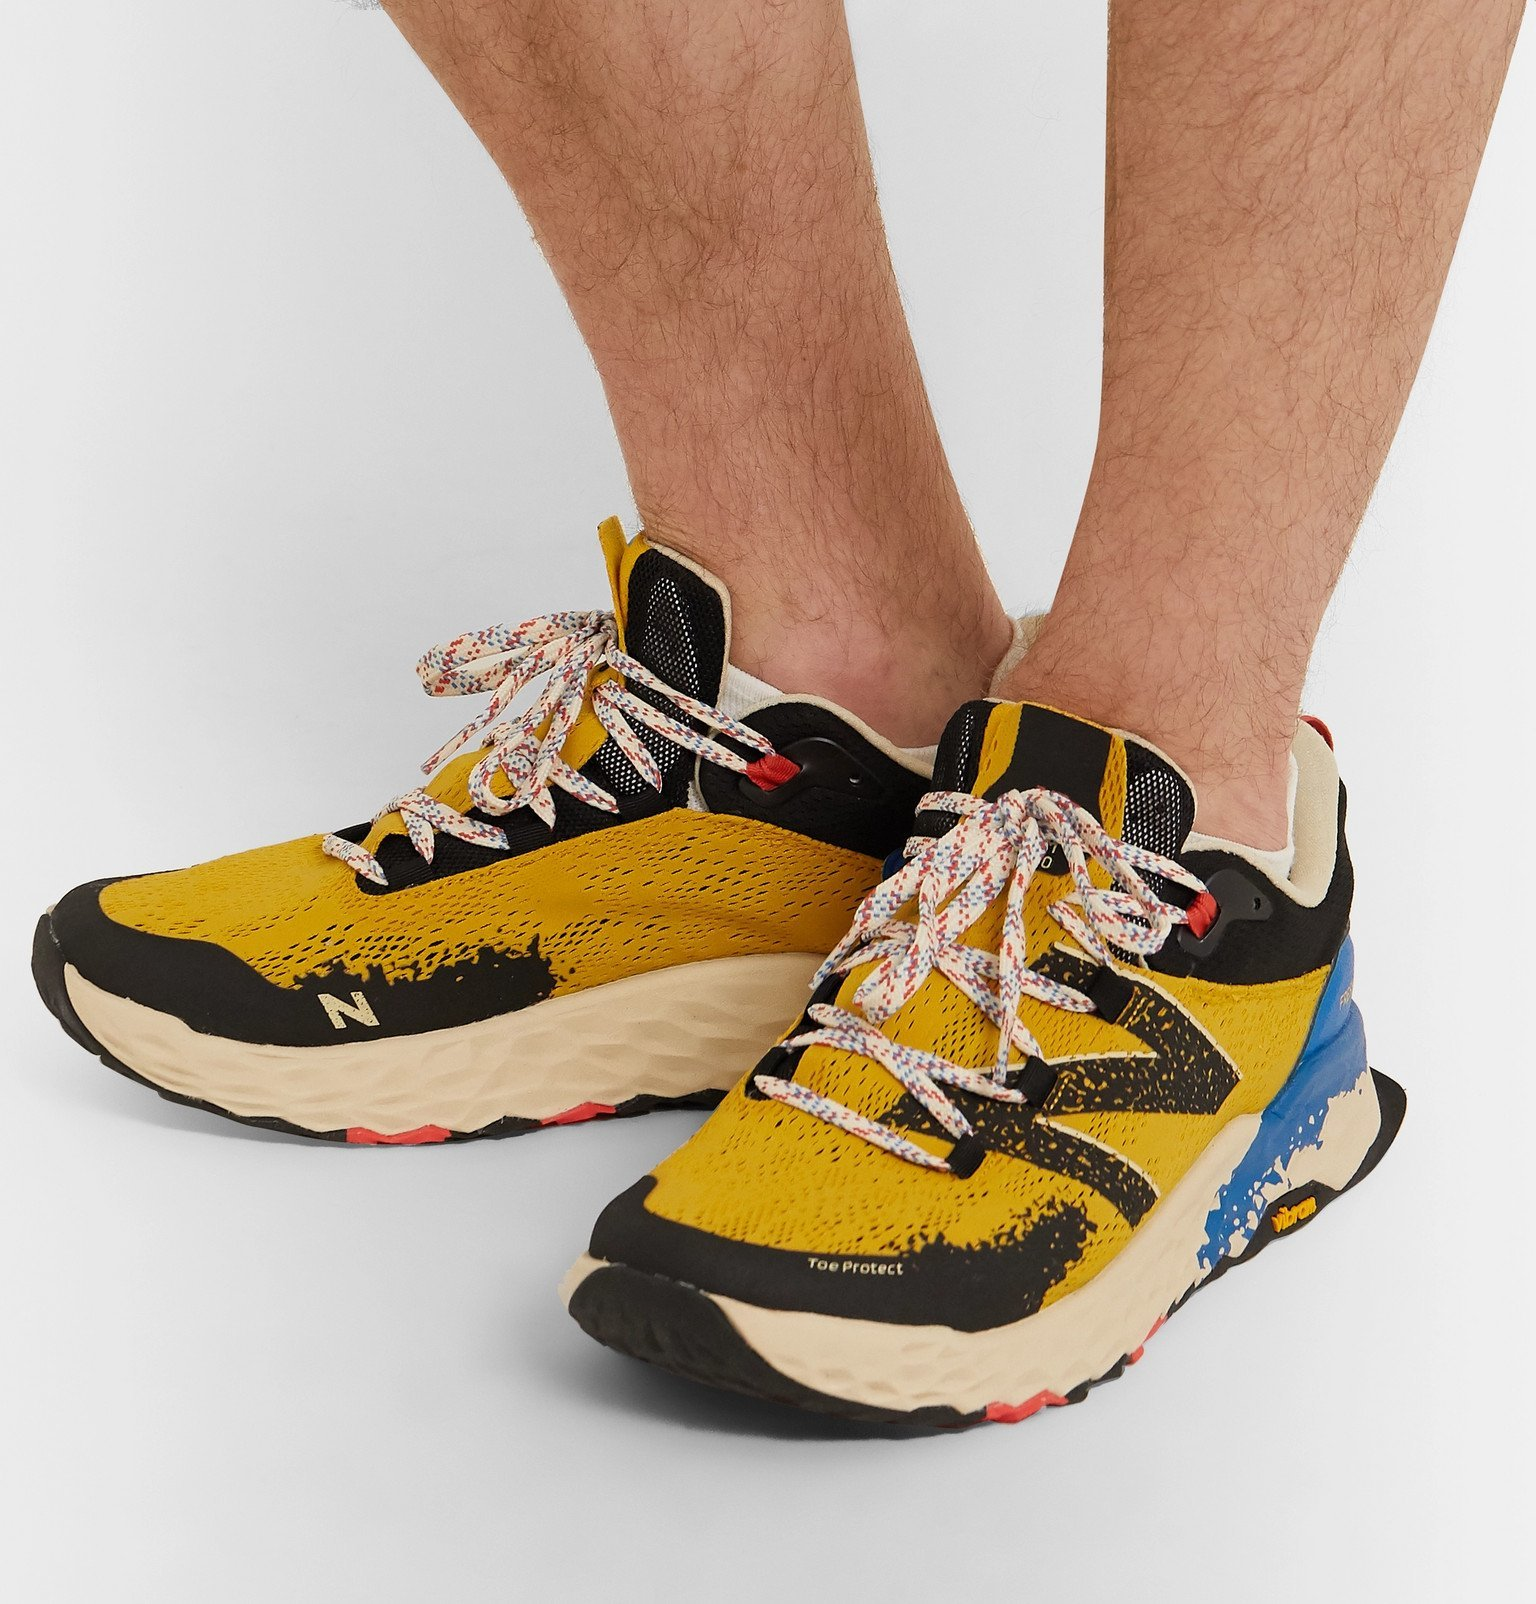 New Balance - Trail Heirro V5 Rubber-Trimmed Mesh Running Sneakers - Yellow